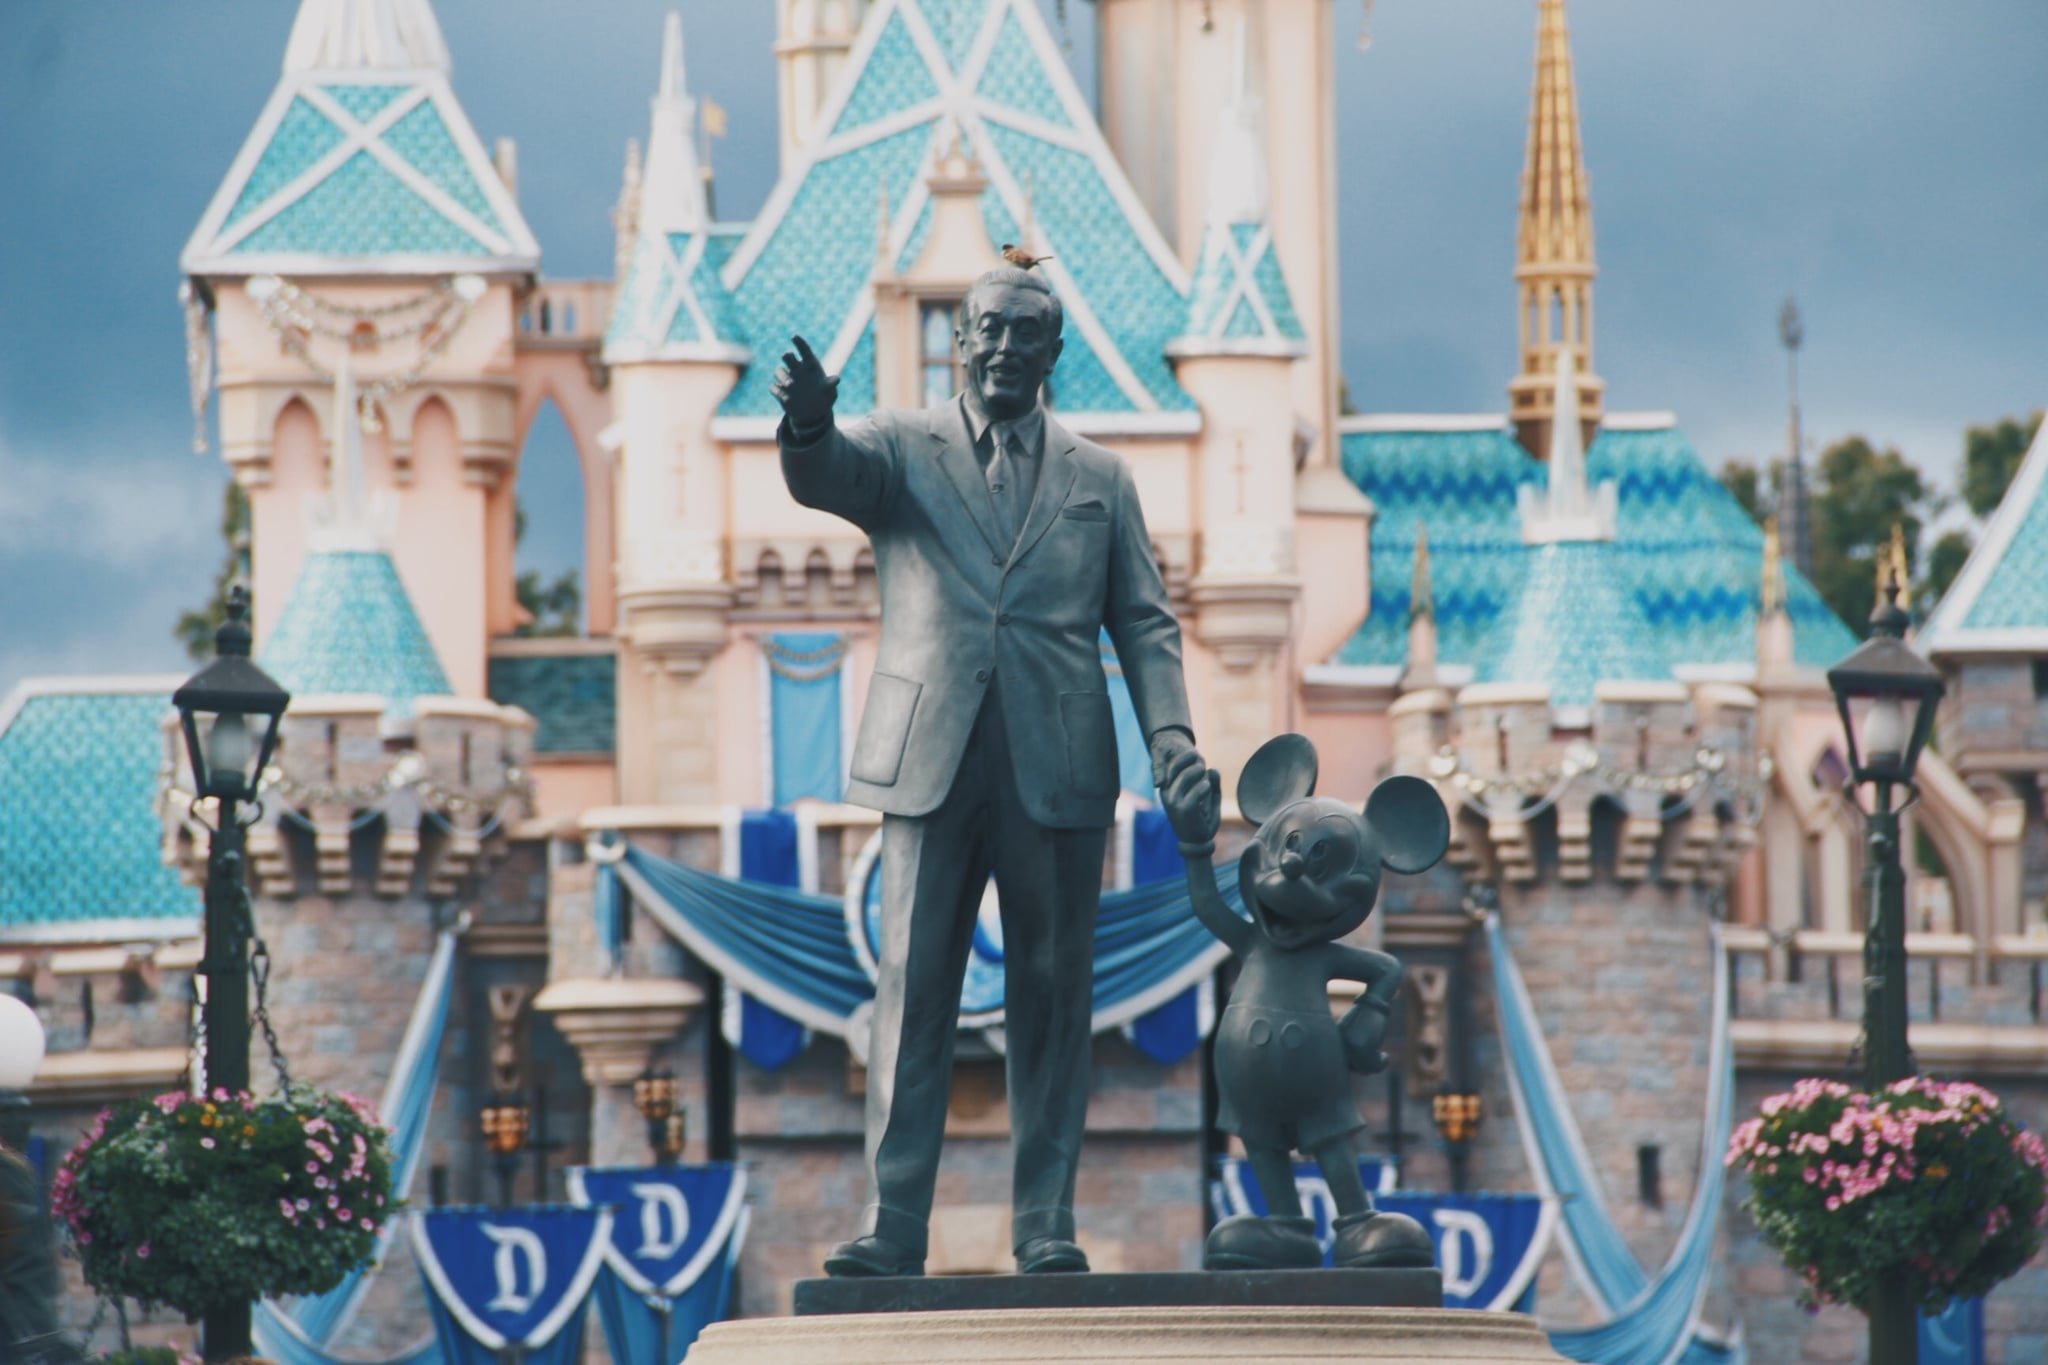 Disneyland Tickets Are on Major Sale Right Now! Get Tickets For as Low as $67